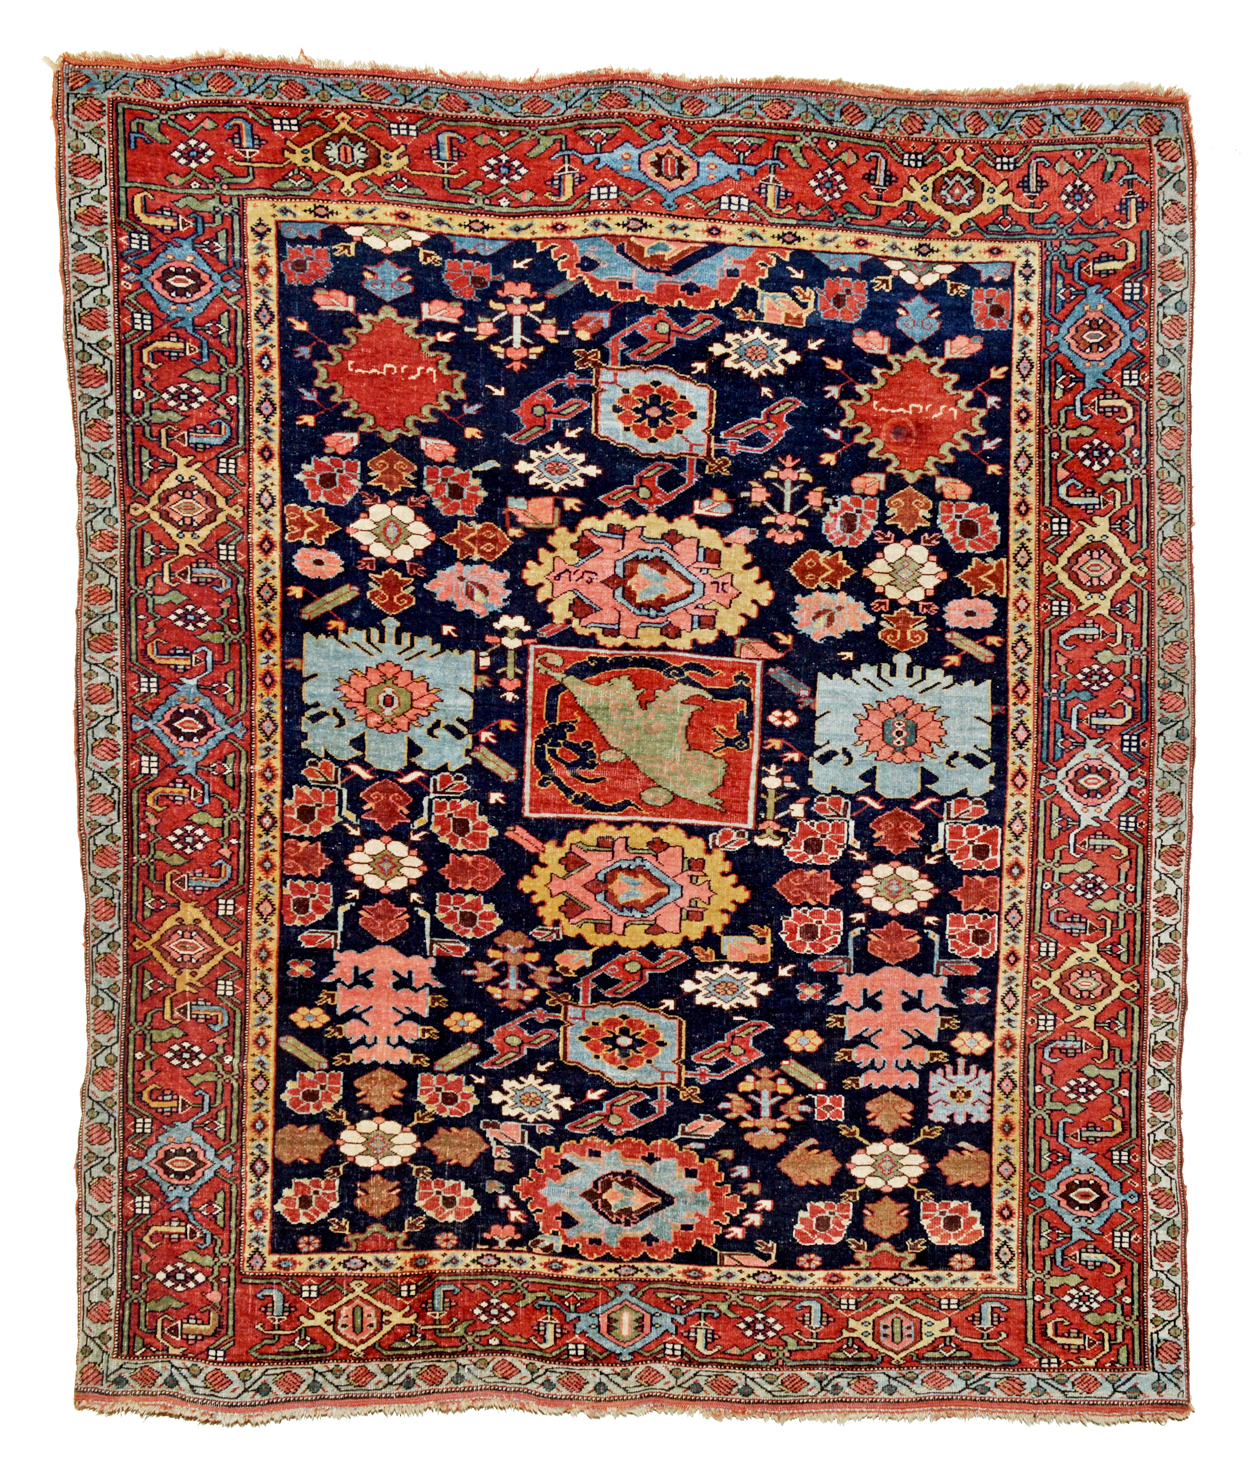 Antique Oriental Rugs Com: New Natural Dye Persian Rugs Boston Area, Antique Oriental